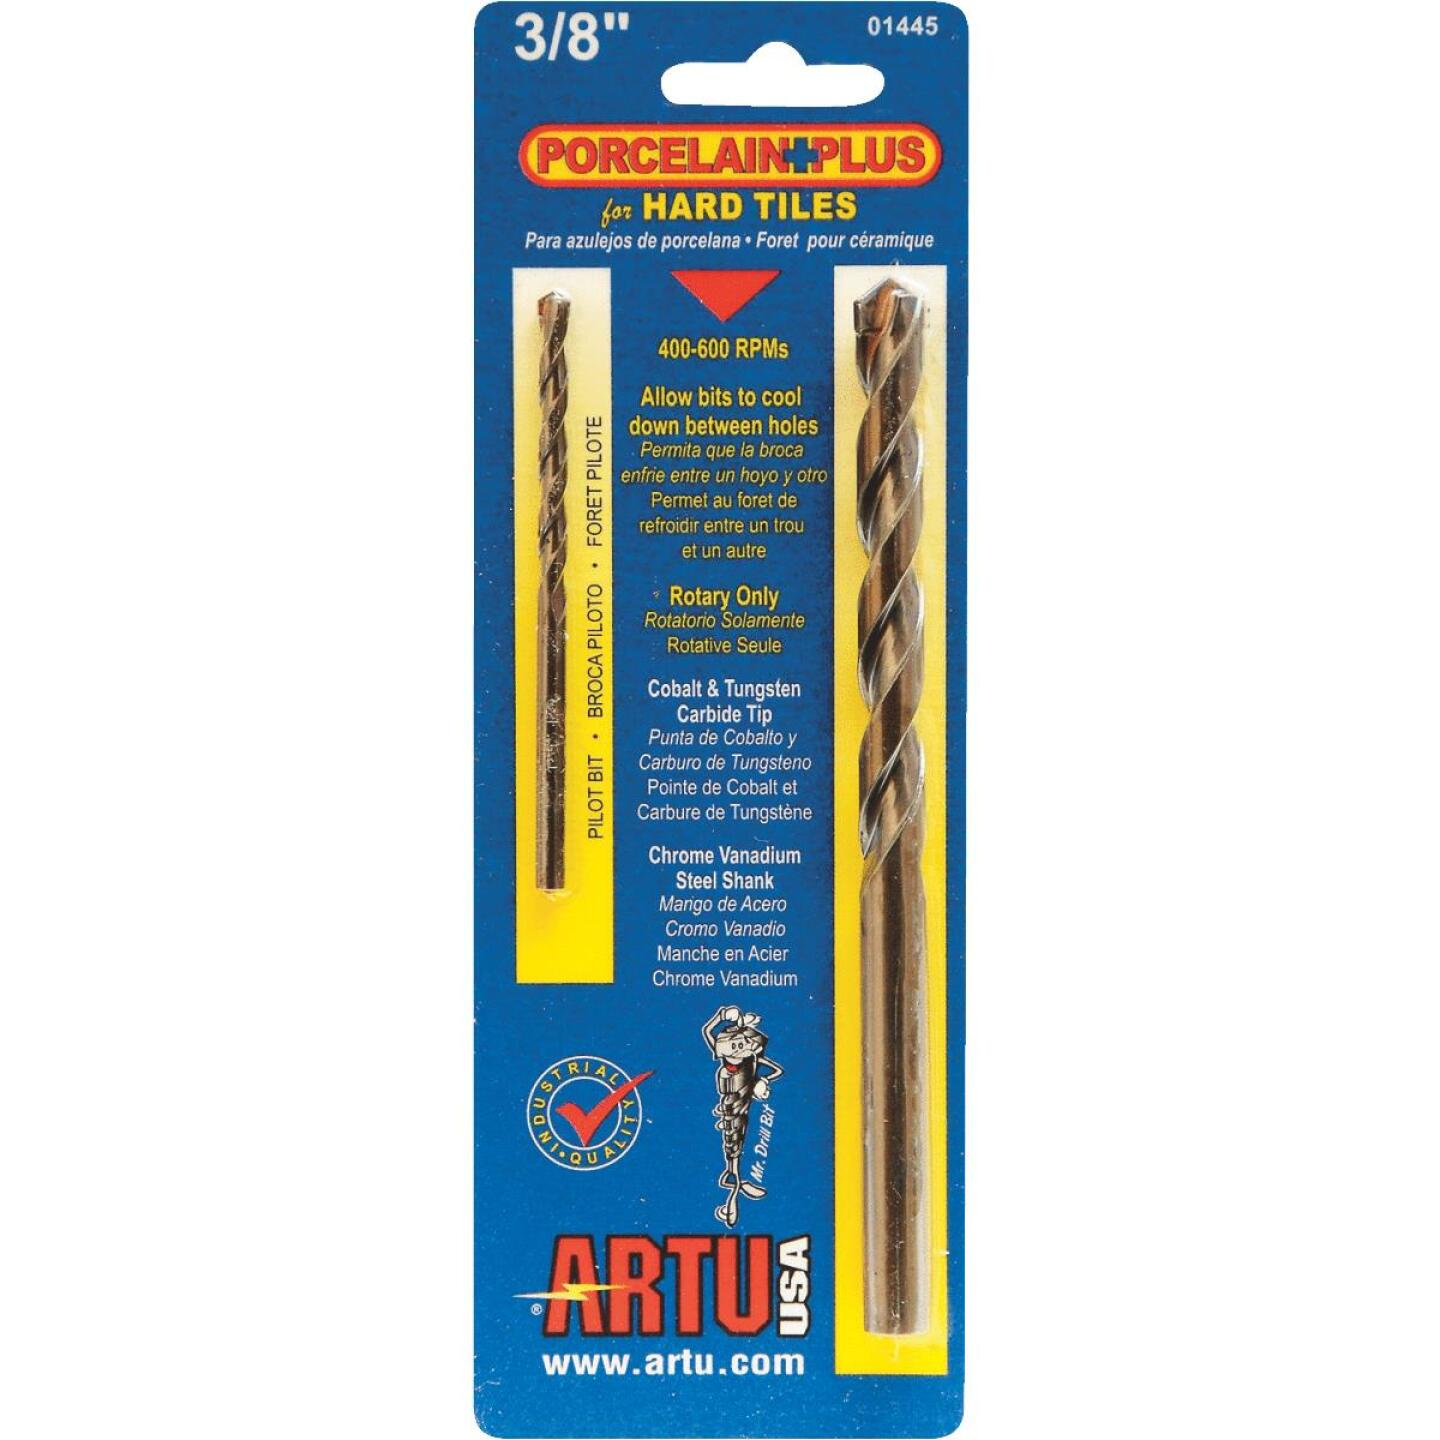 ARTU 3/8 In. x 5-5/16 In. Cobalt and Tungsten Carbide Glass & Tile Drill Bit Image 1